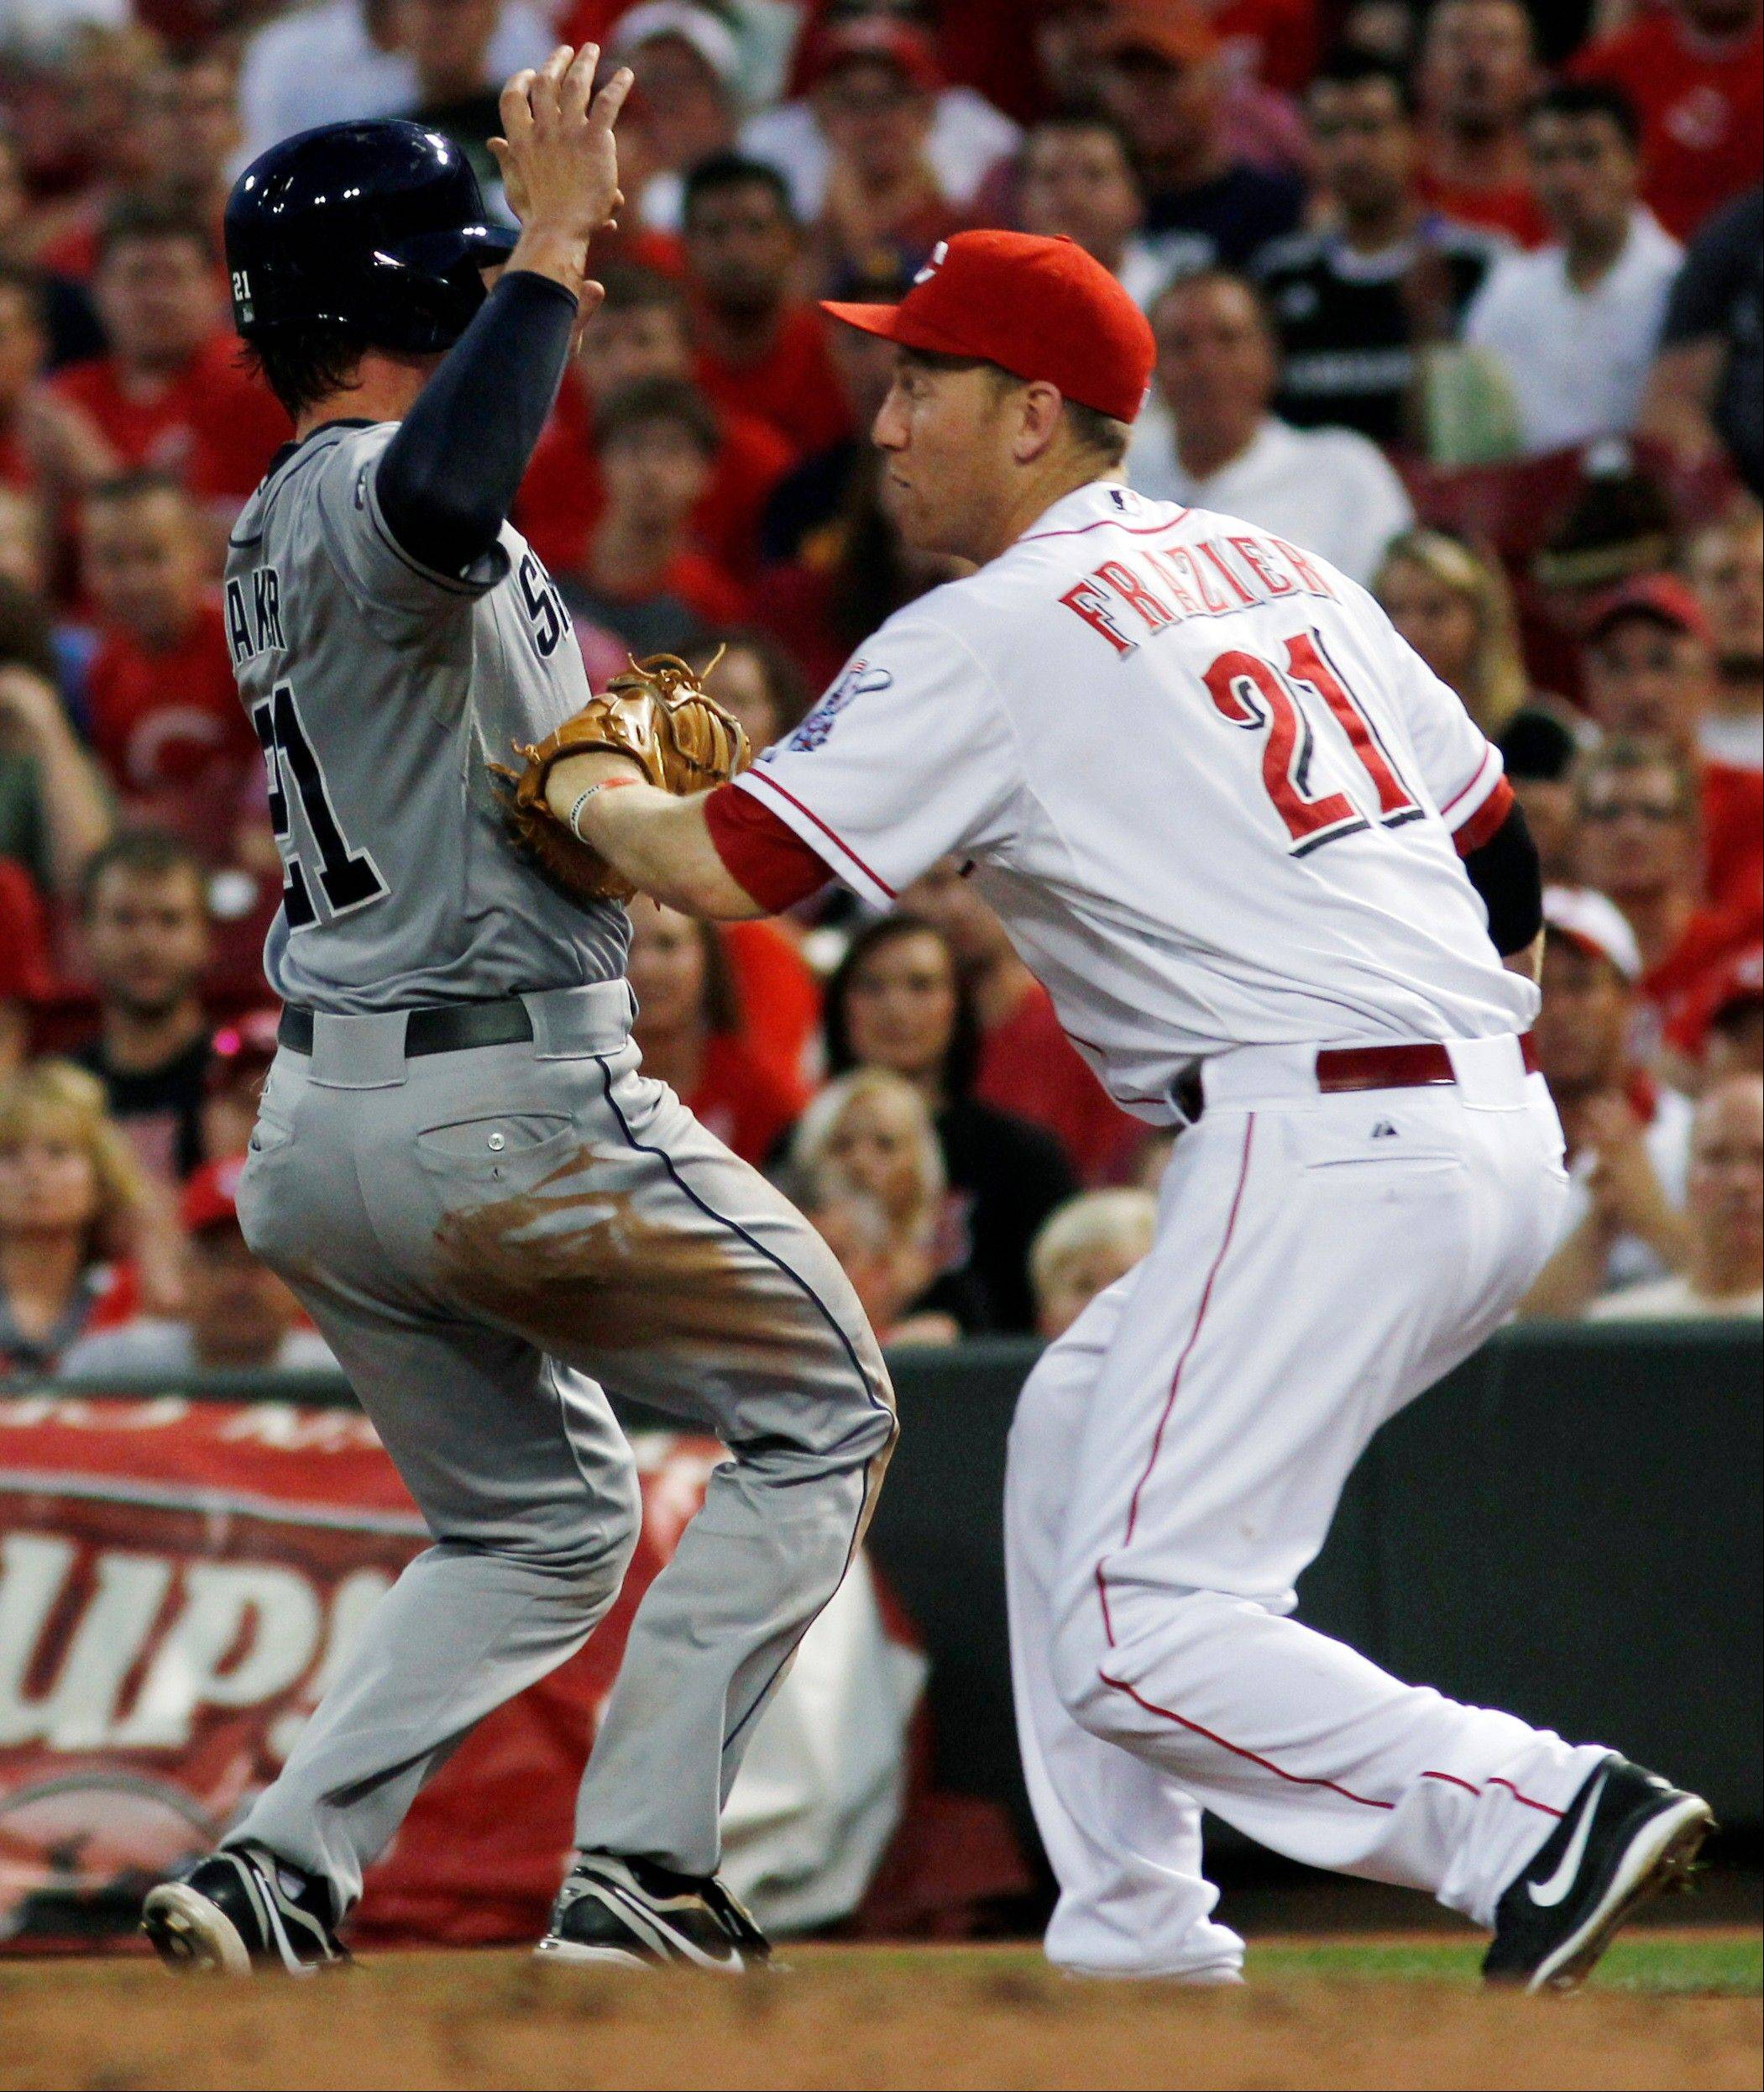 The Reds' Todd Frazier tags San Diego's John Baker out on a rundown to complete a double play in the fifth inning Tuesday in Cincinnati.